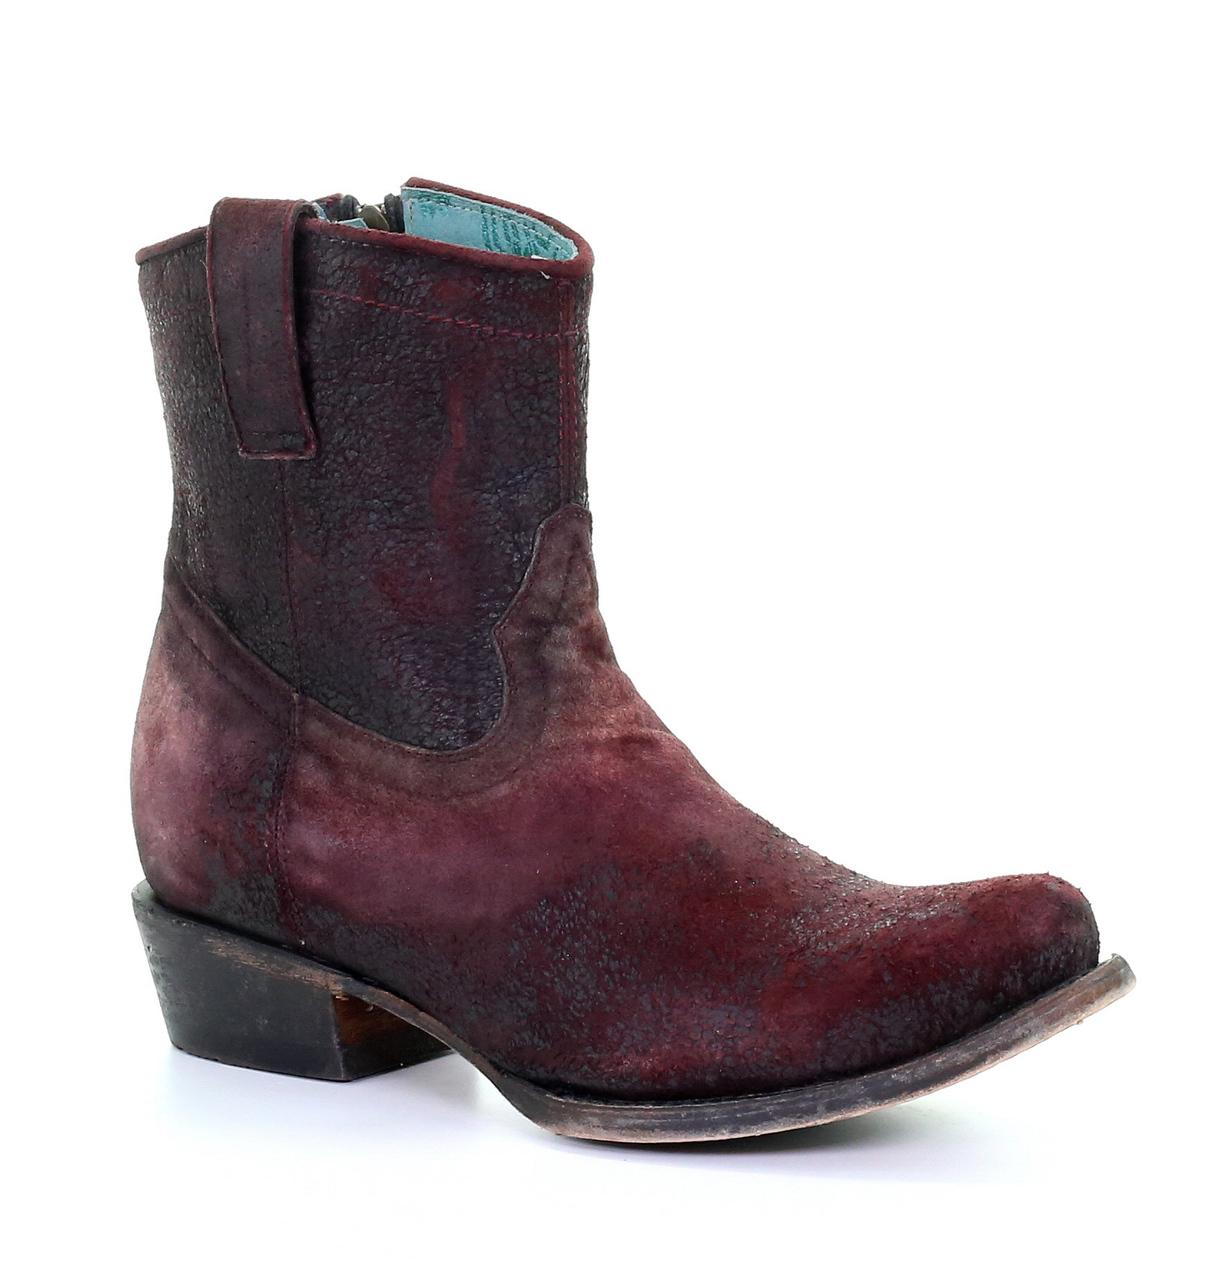 6ef190f8cb0 Corral Boots for Women | Corral Cowgirl Boots